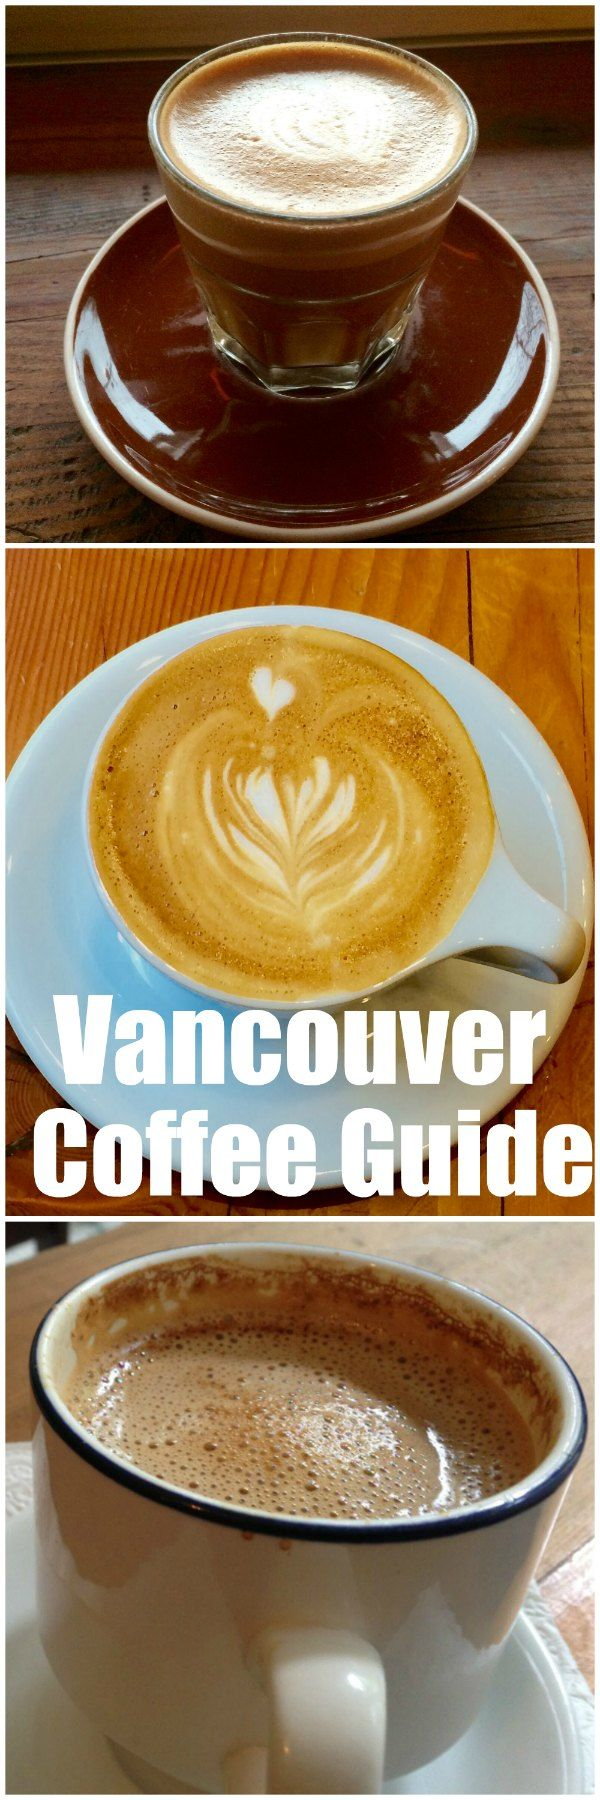 Vancouver Coffee Guide: Where To Find The Best Coffee